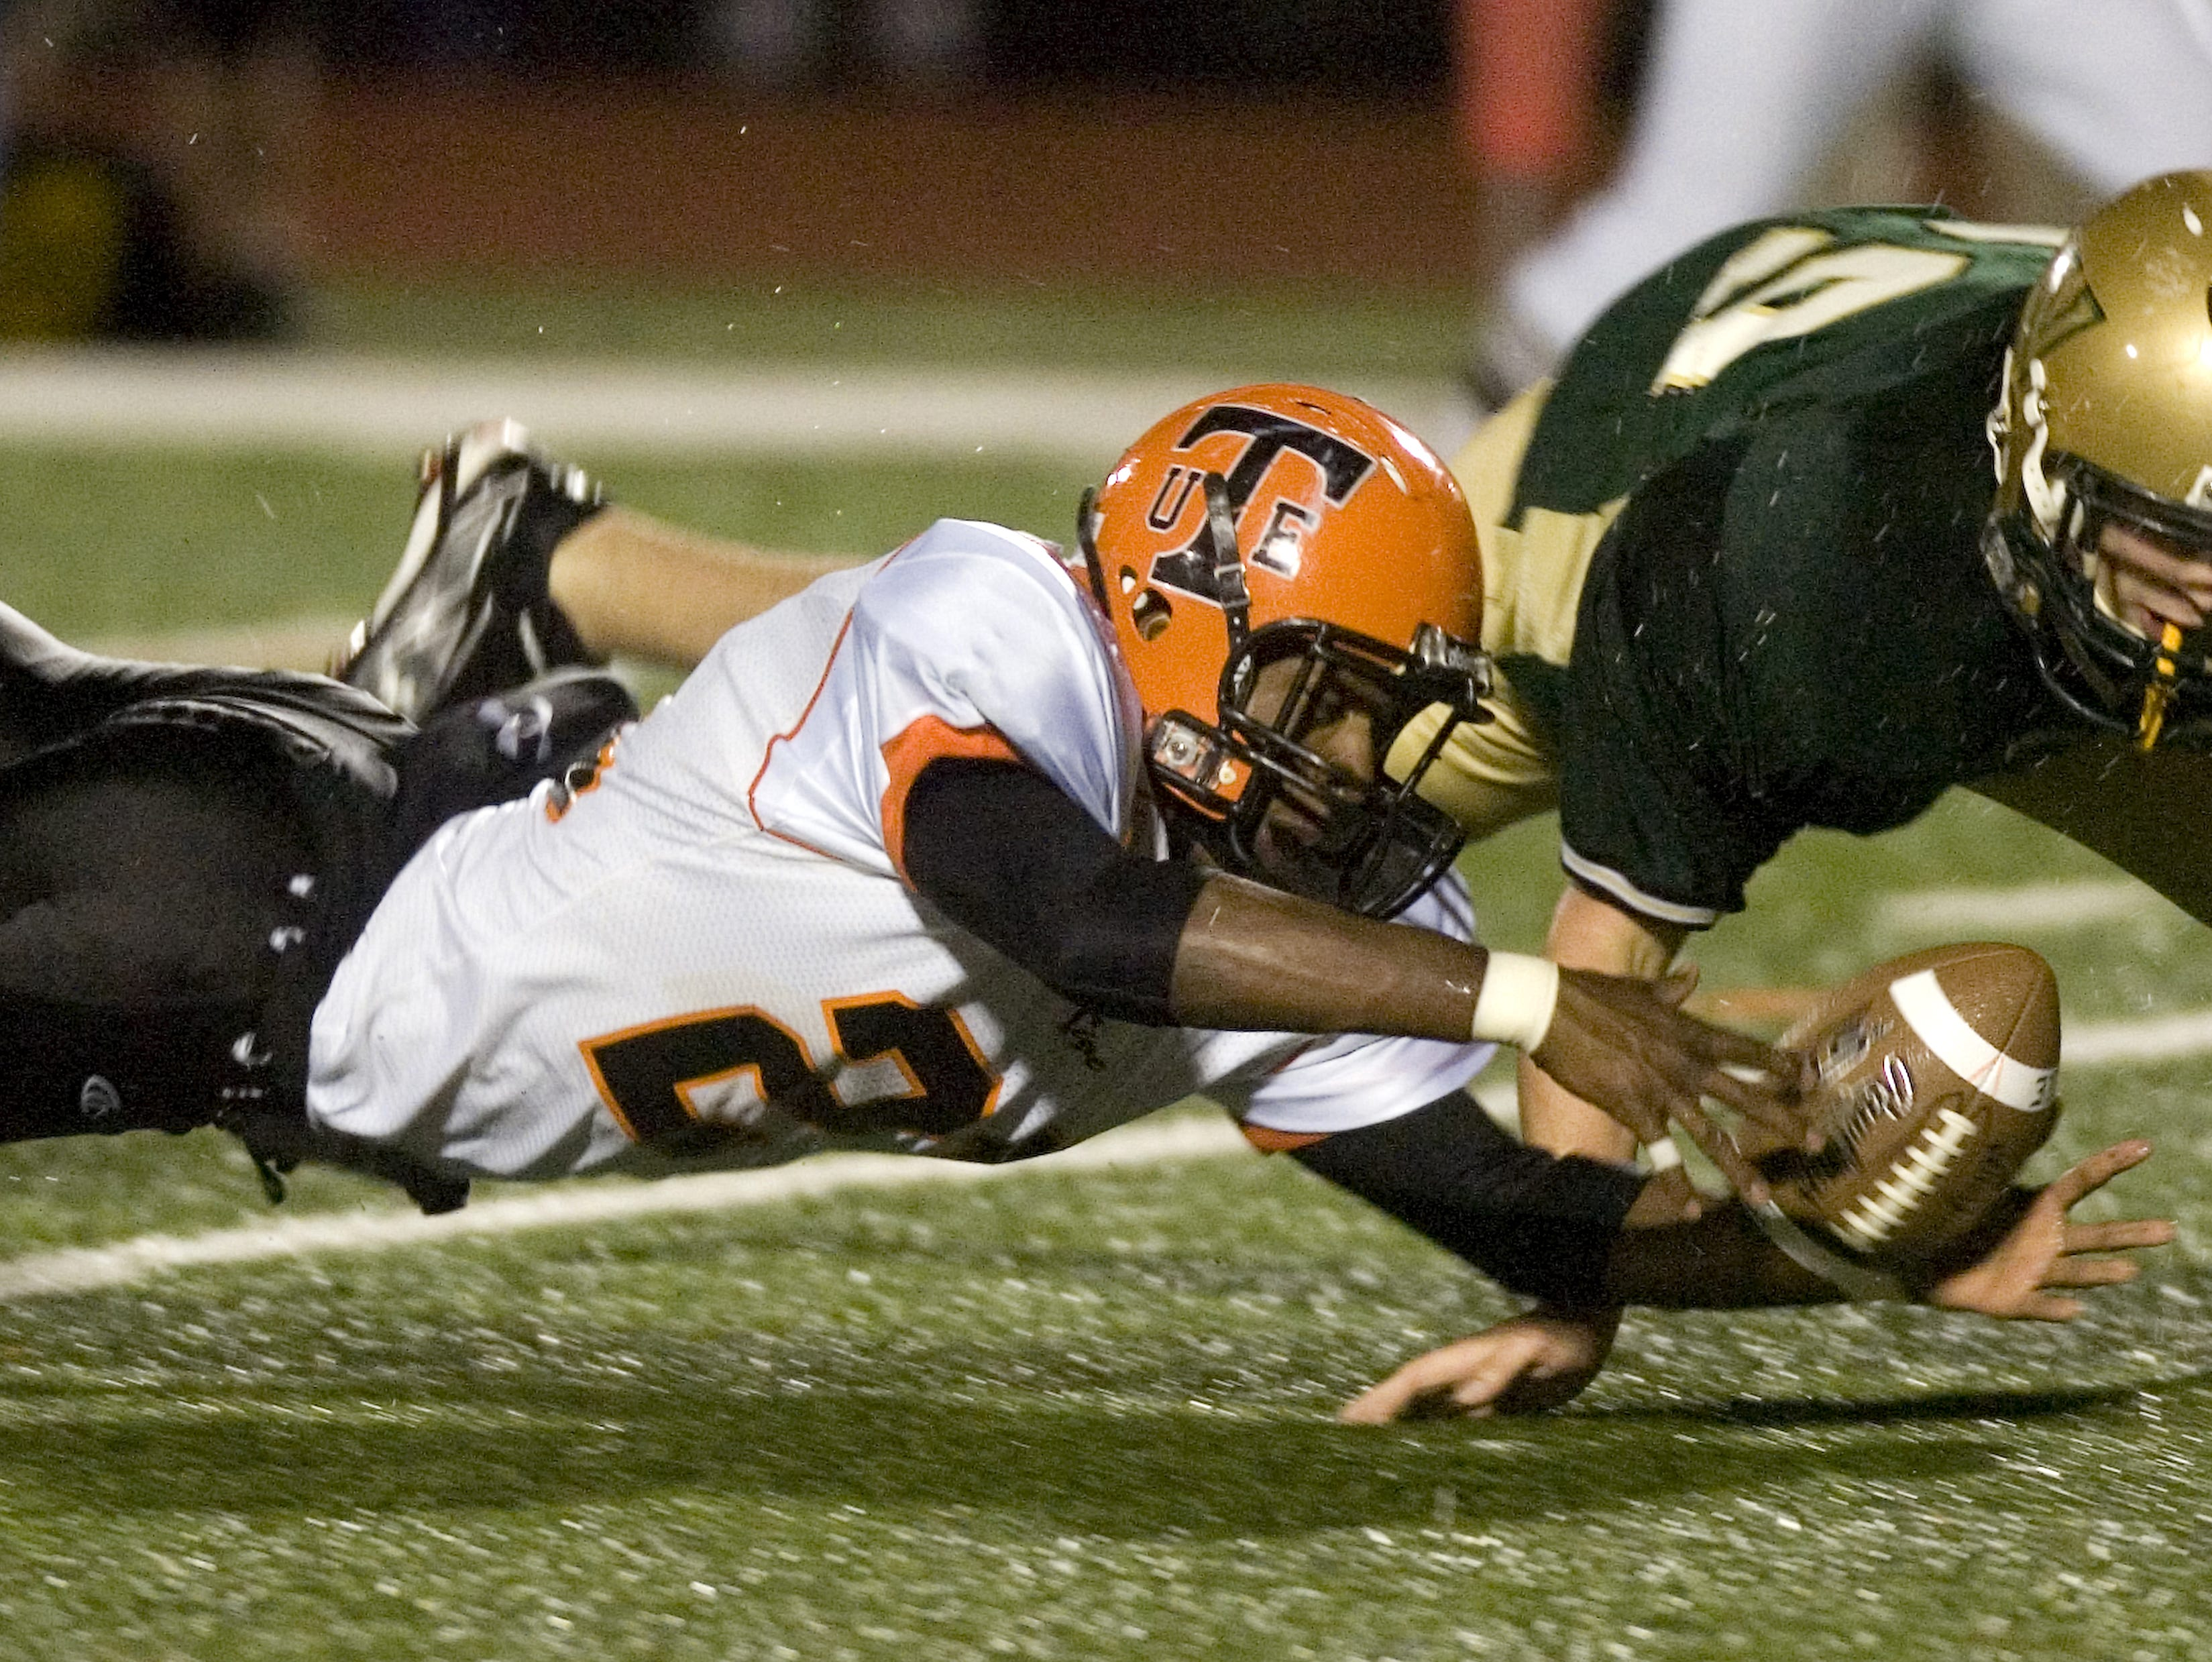 Union-Endicott's Jordan Thomas, left, recovers his own fumble before Vestal's Brock Leonard could get to the ball in the second quarter of a 2009 game at Dick Hoover Stadium.